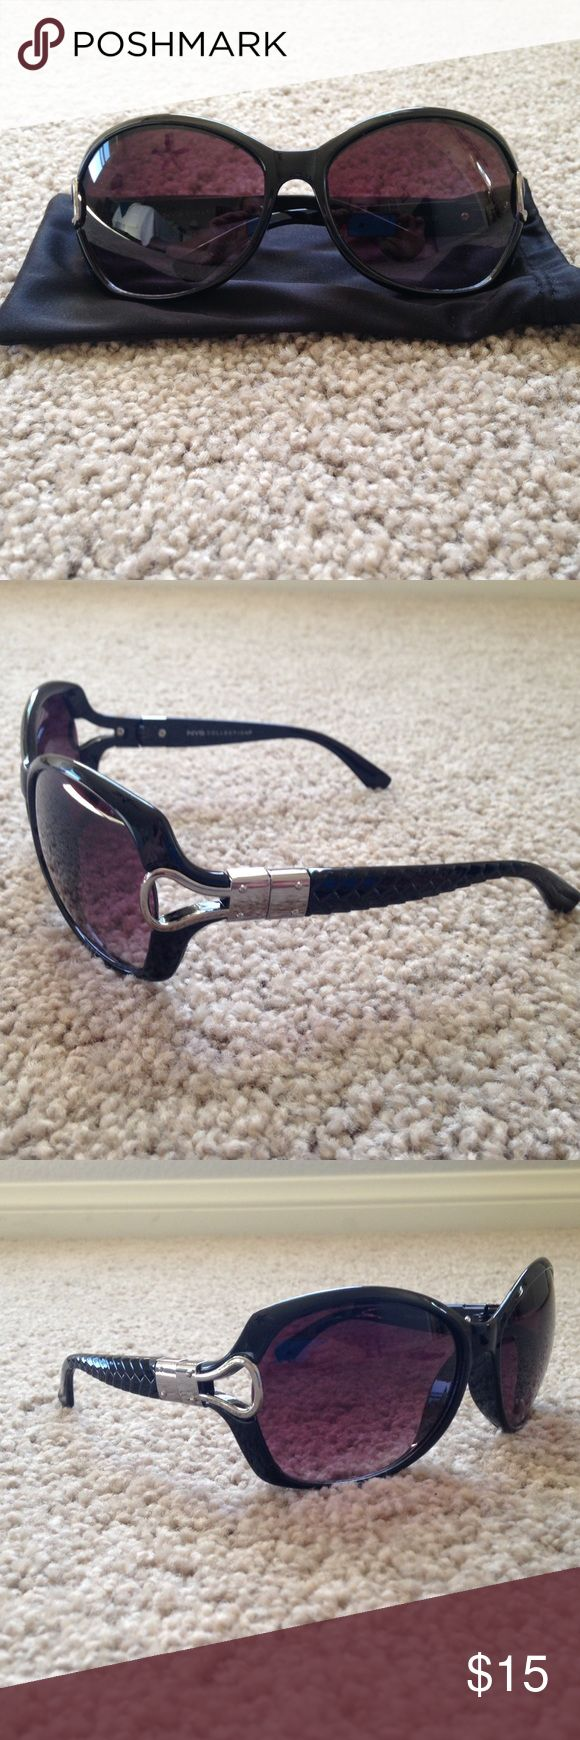 NWOT NYS Sunglasses NWOT!!! Never worn!! NYS collection sunglasses. All around black. These have a nice basket weave type detail on the bows! Comes with pouch for protection!!! Accessories Sunglasses